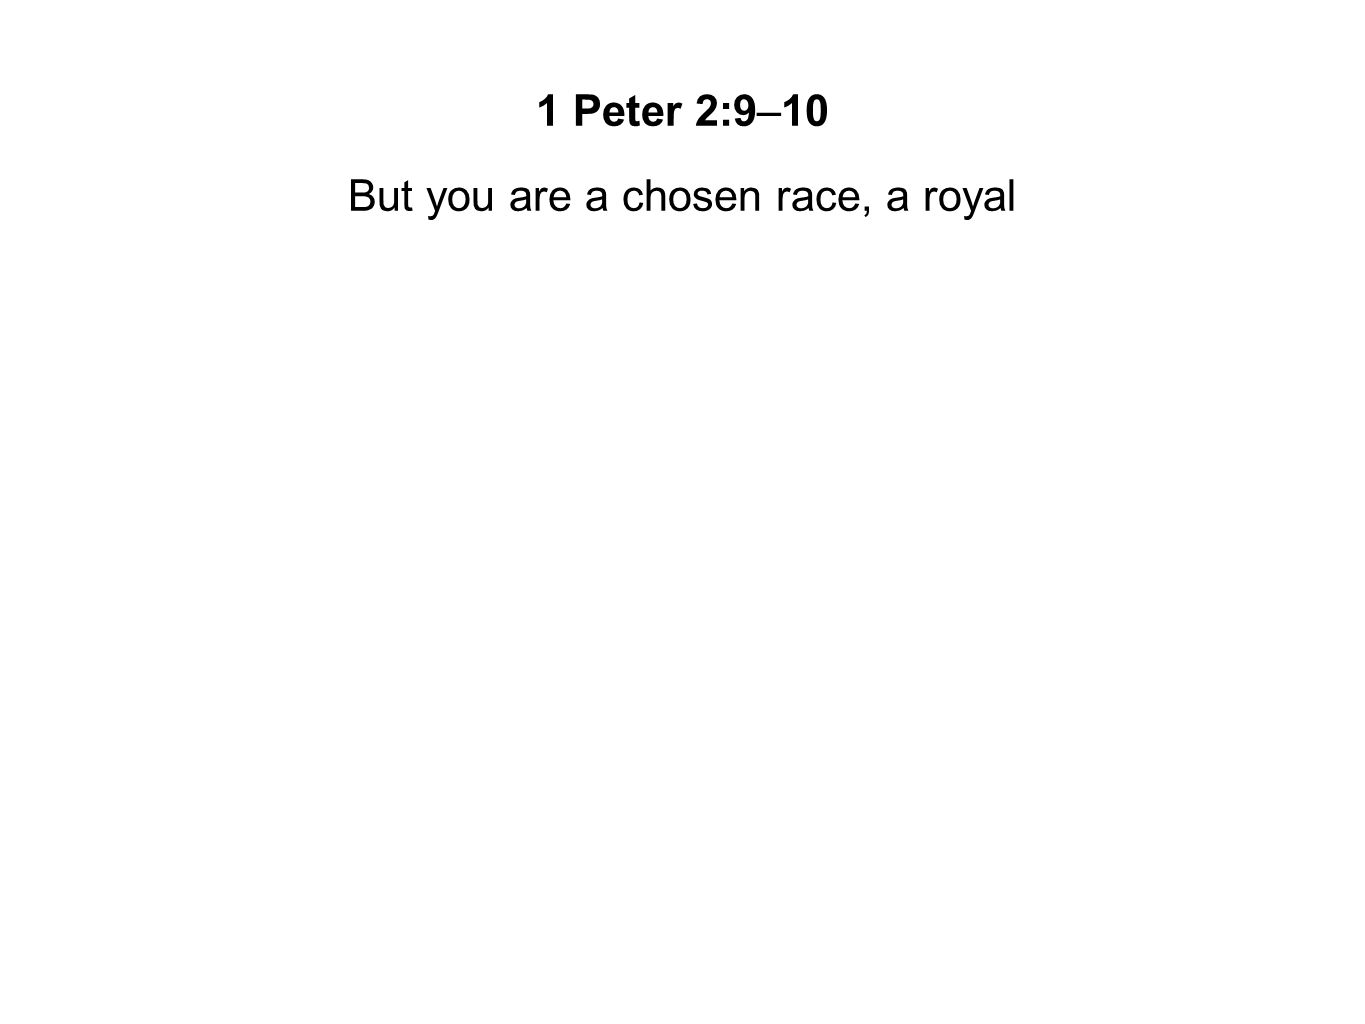 But you are a chosen race, a royal